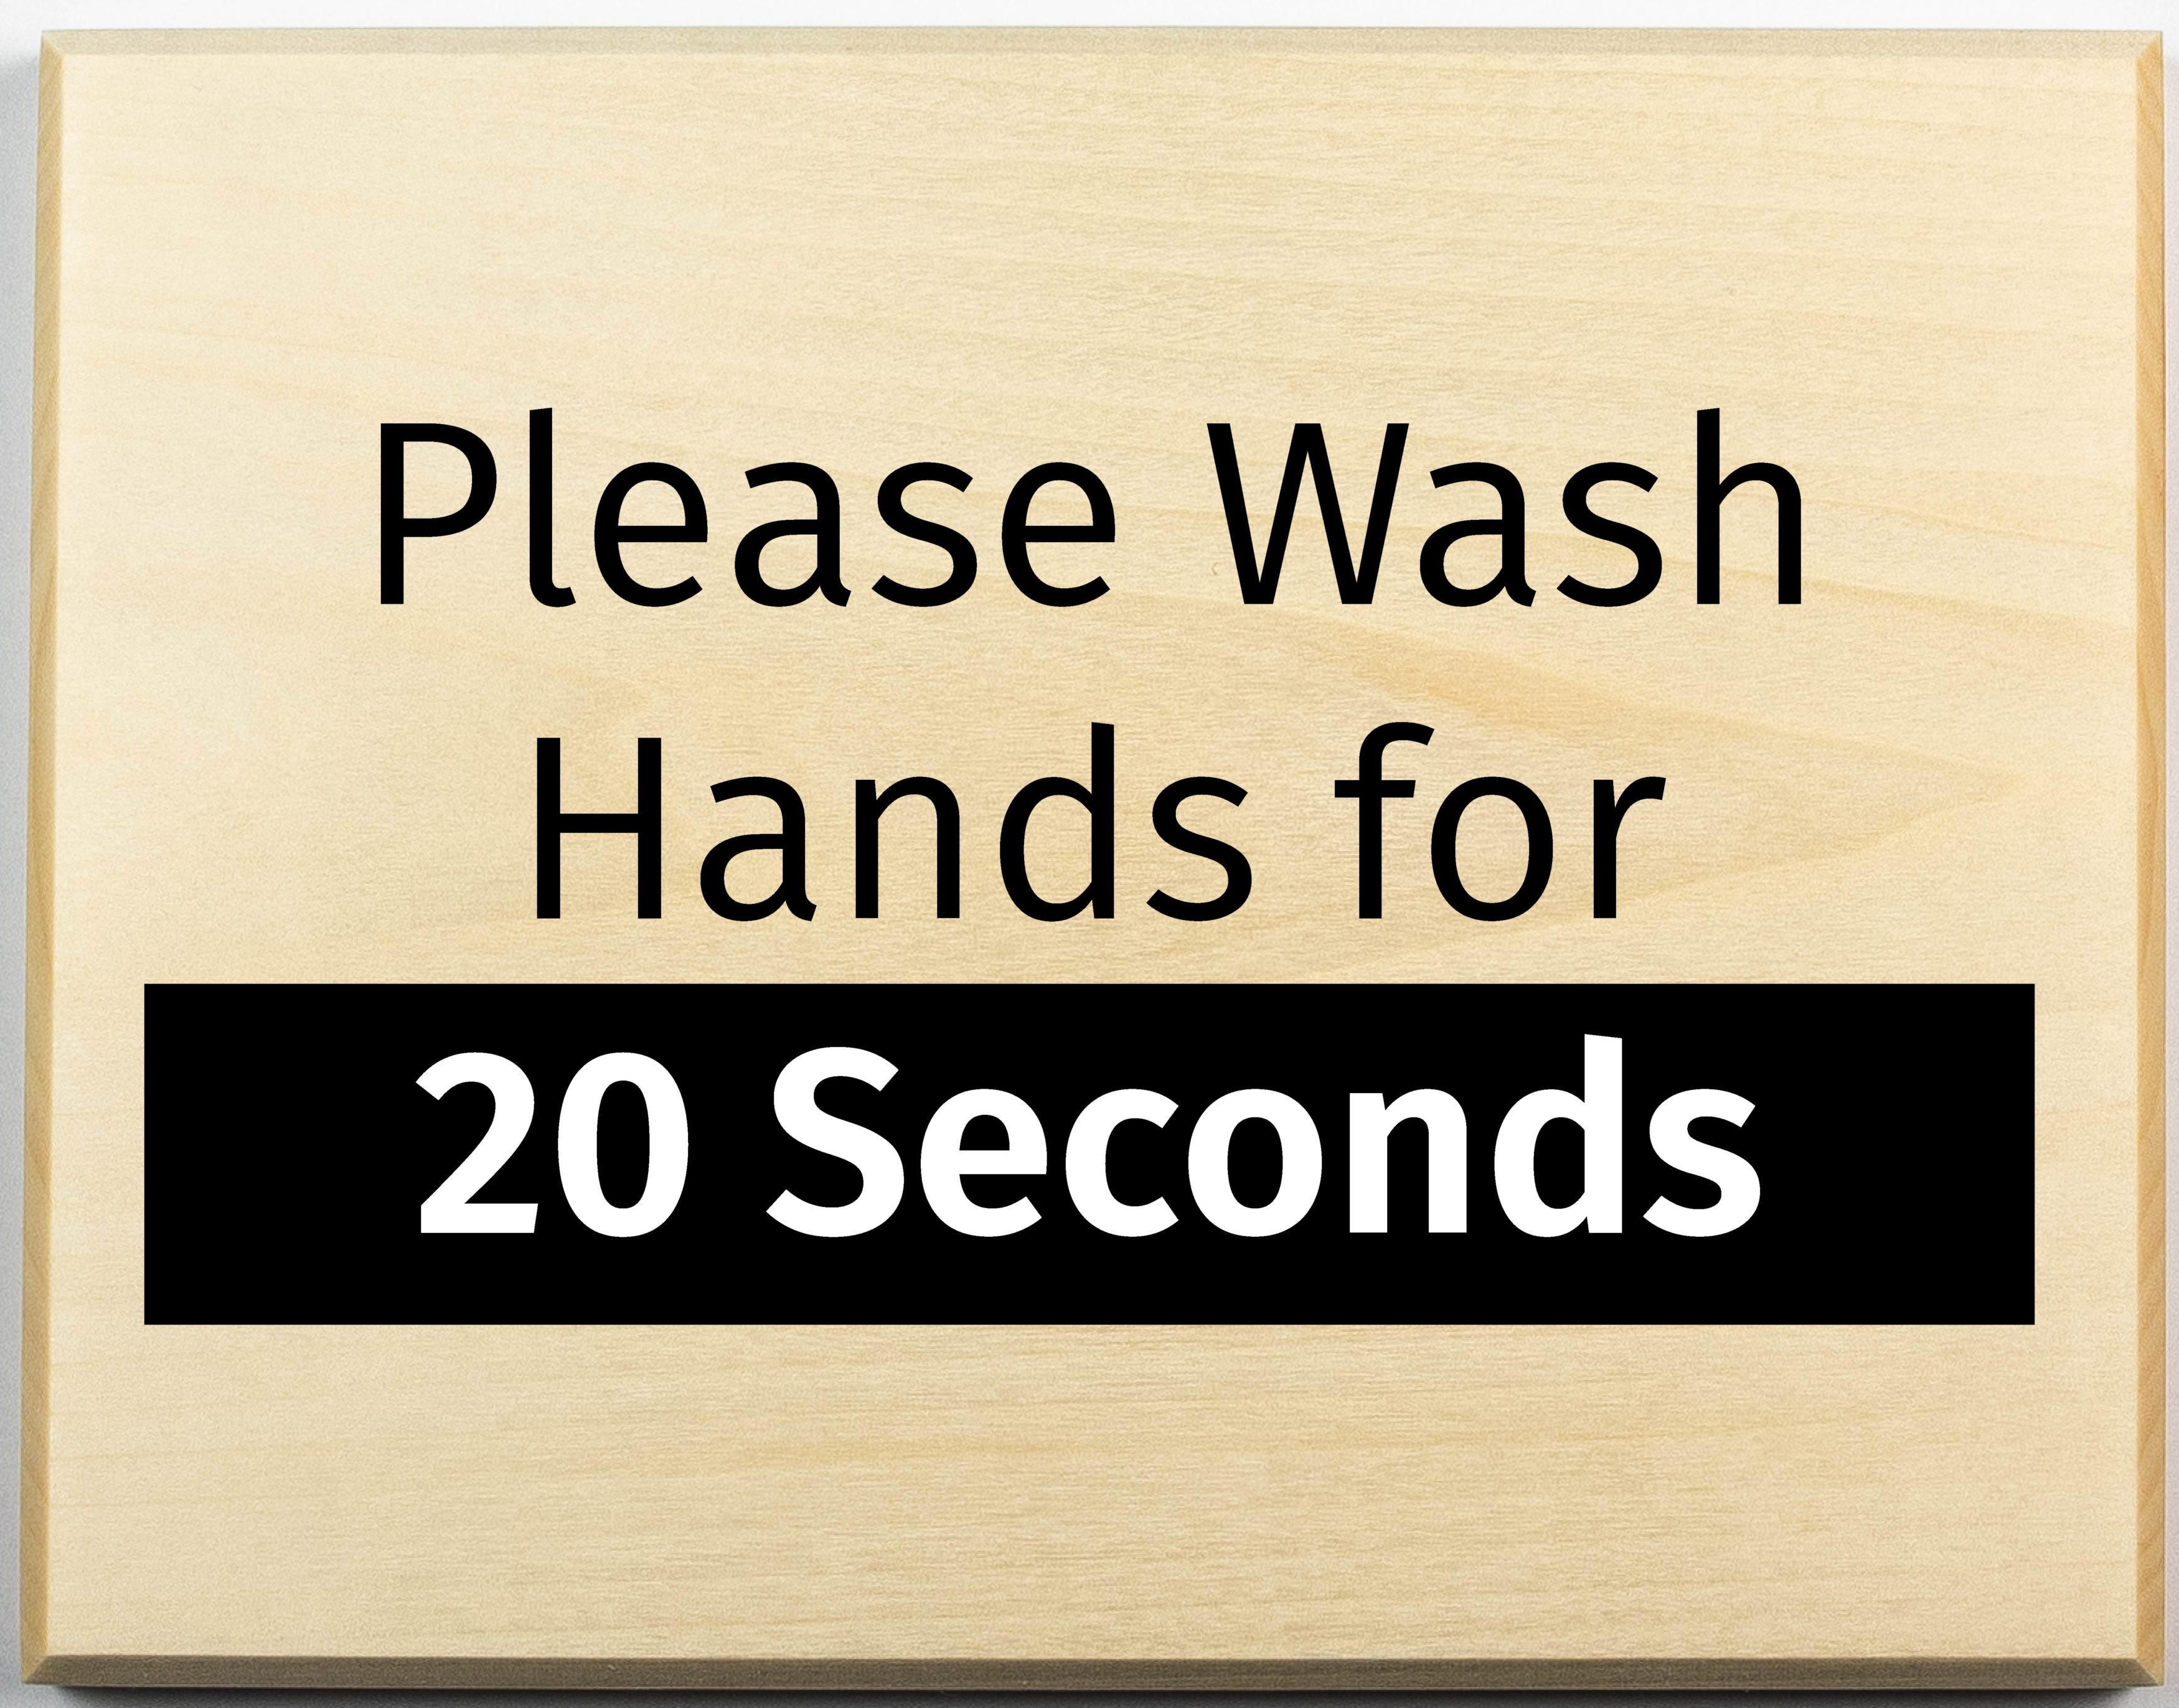 Please Wash Hands for 20 Seconds Sign, Coronavirus signage